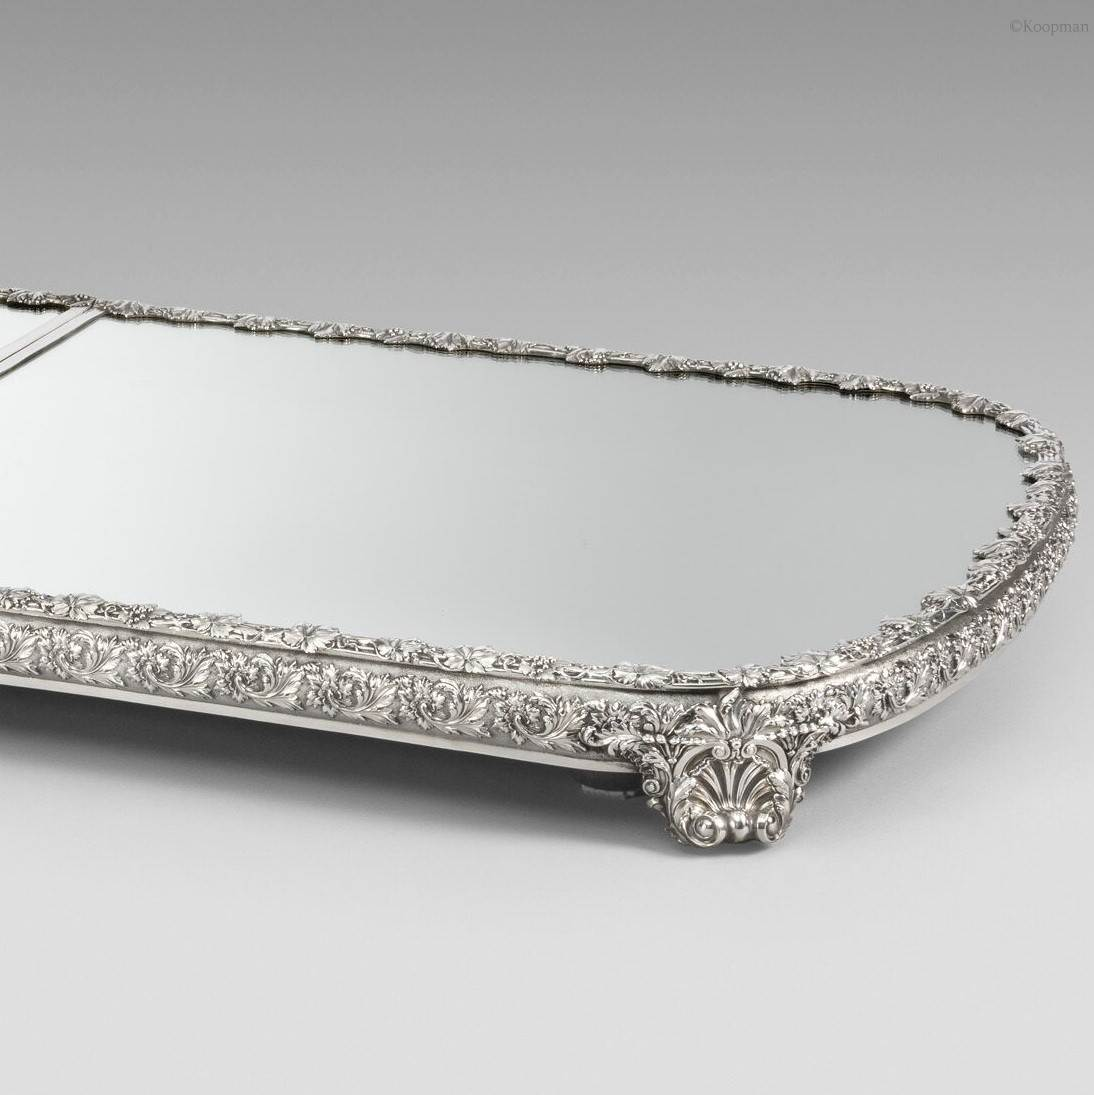 A George III Three-Part Silver-Mounted Mirror Plateau